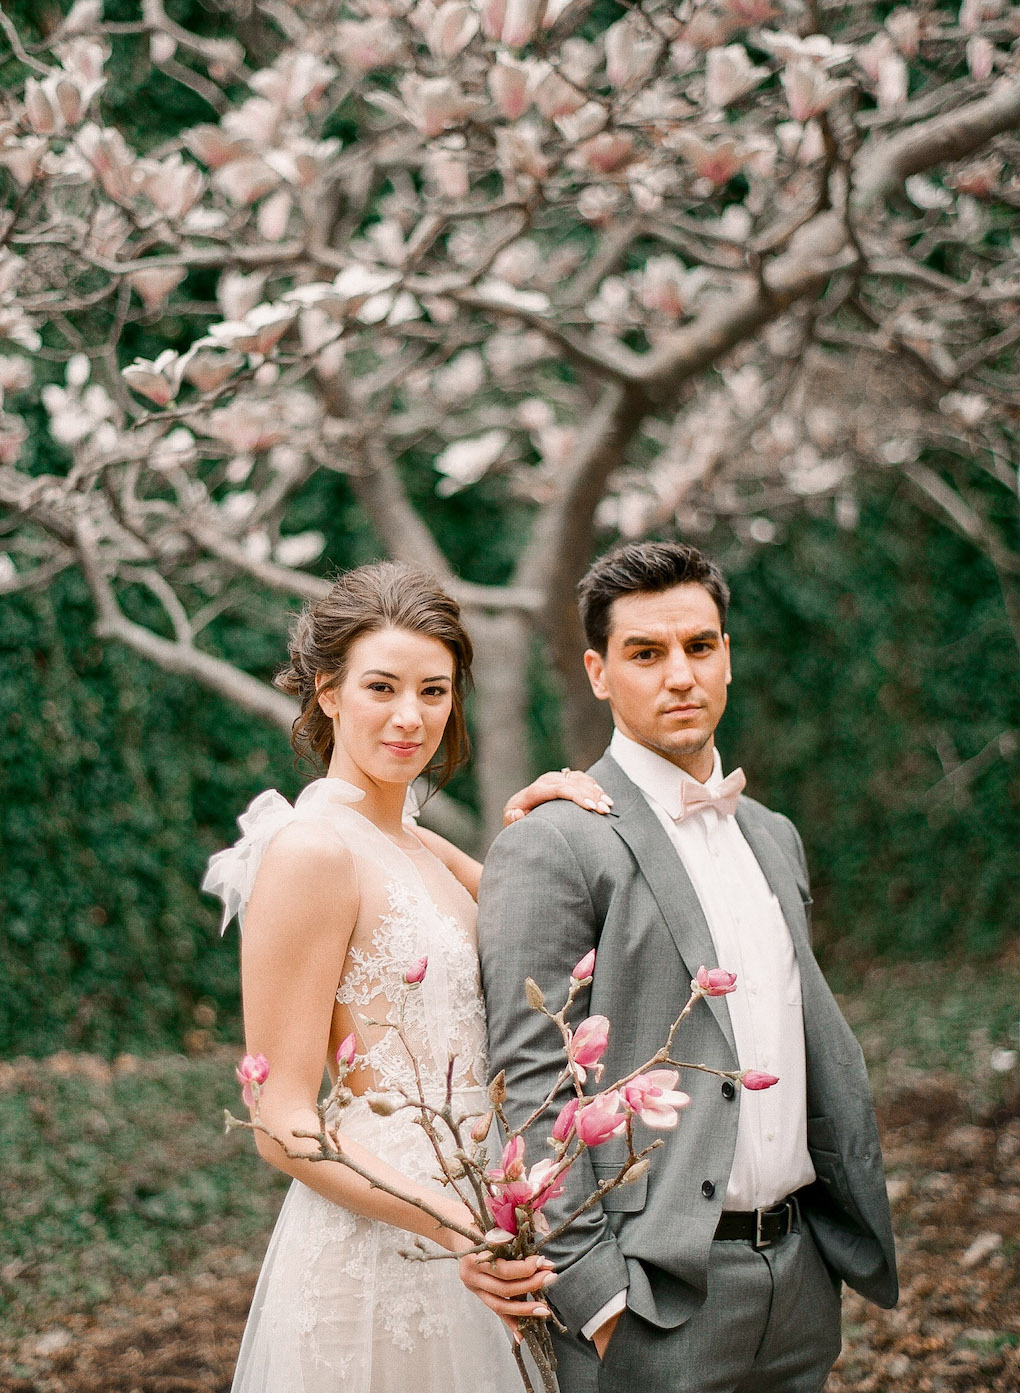 Modern wedding photos in downtown Pittsburgh:Soft and Subtle Palettes of Spring Blossoms | Editorial Shoot at The Renaissance Pittsburgh by Exhale Events. See more inspiration at exhale-events.com!